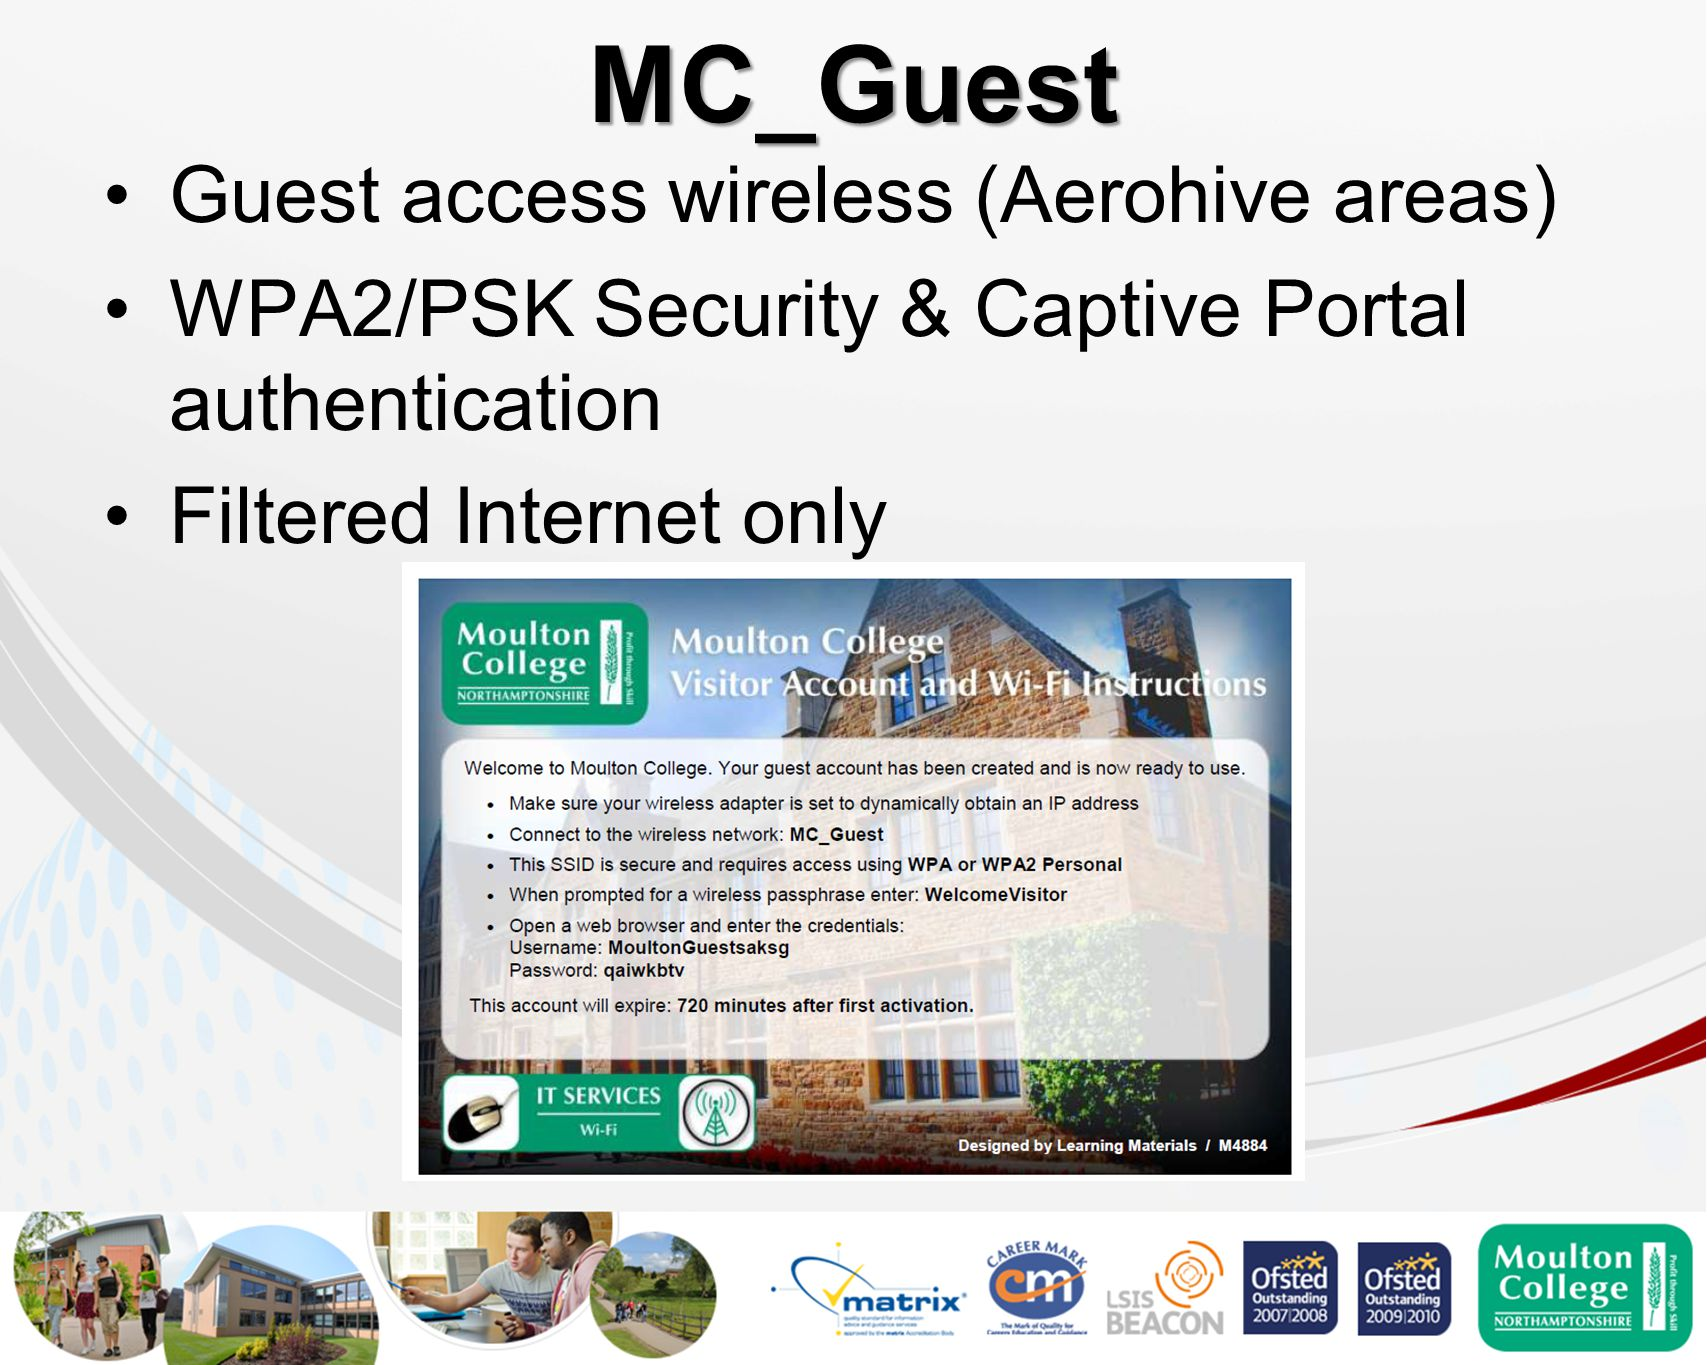 MC_Guest Guest access wireless (Aerohive areas) WPA2/PSK Security & Captive Portal authentication Filtered Internet only